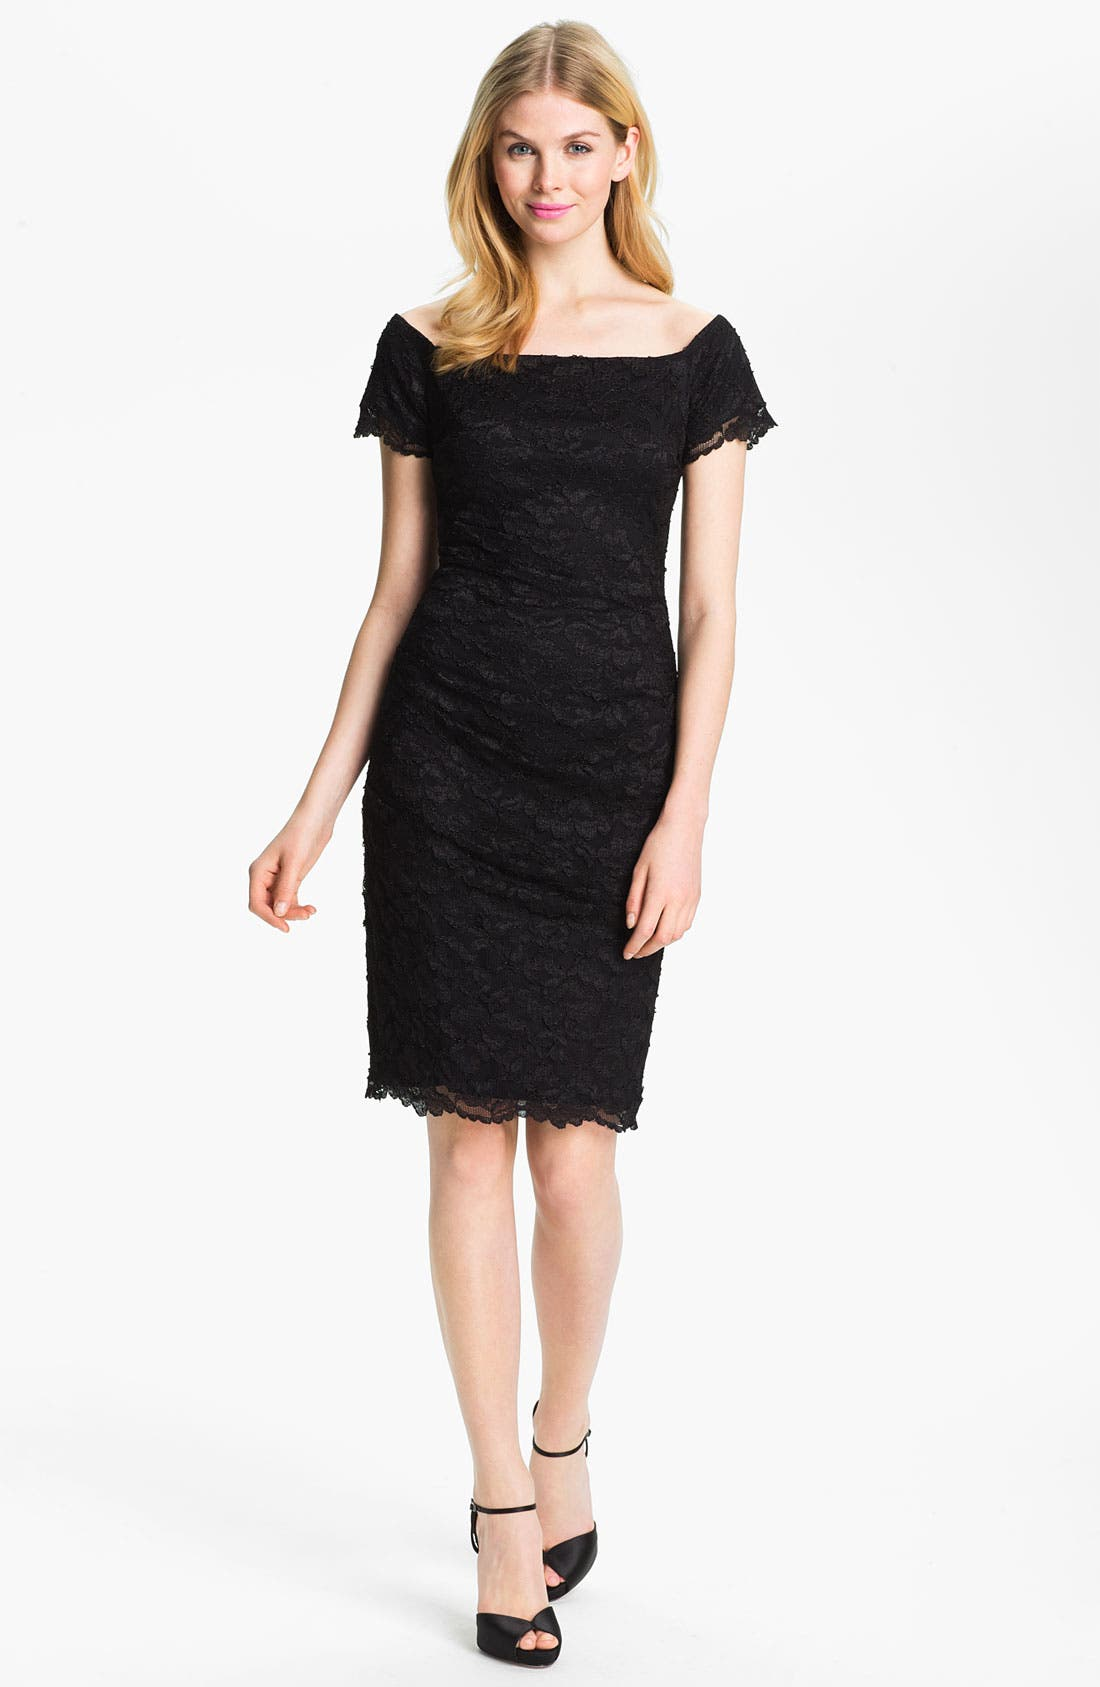 Alternate Image 1 Selected - Betsy & Adam Square Neck Lace Overlay Sheath Dress